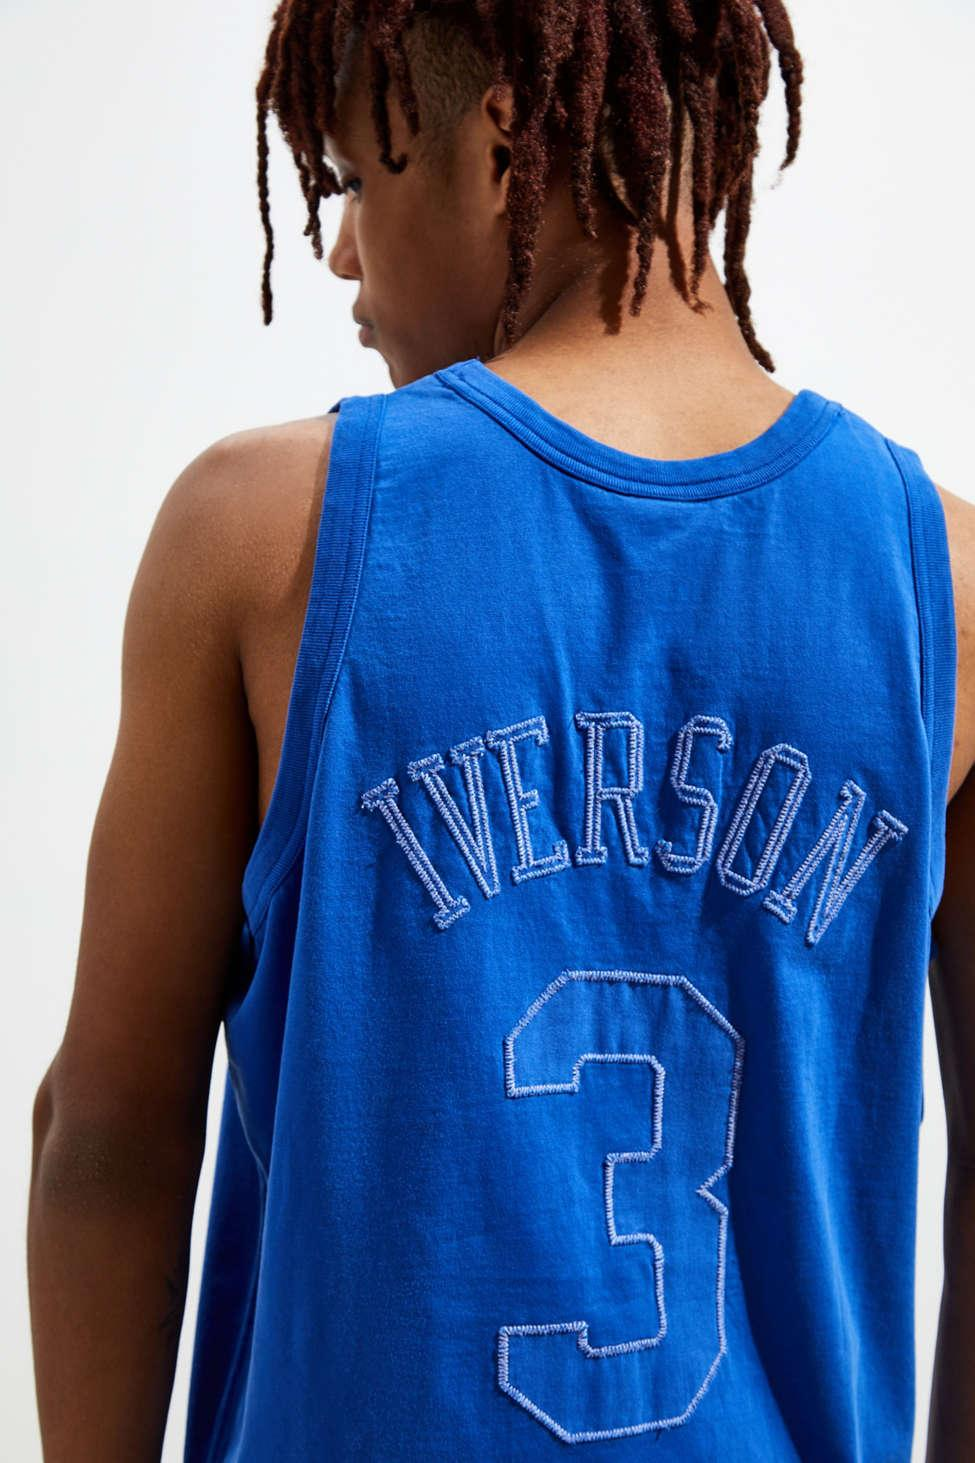 51237e6a Mitchell & Ness Philadelphia 76ers Allen Iverson Washed Out ...